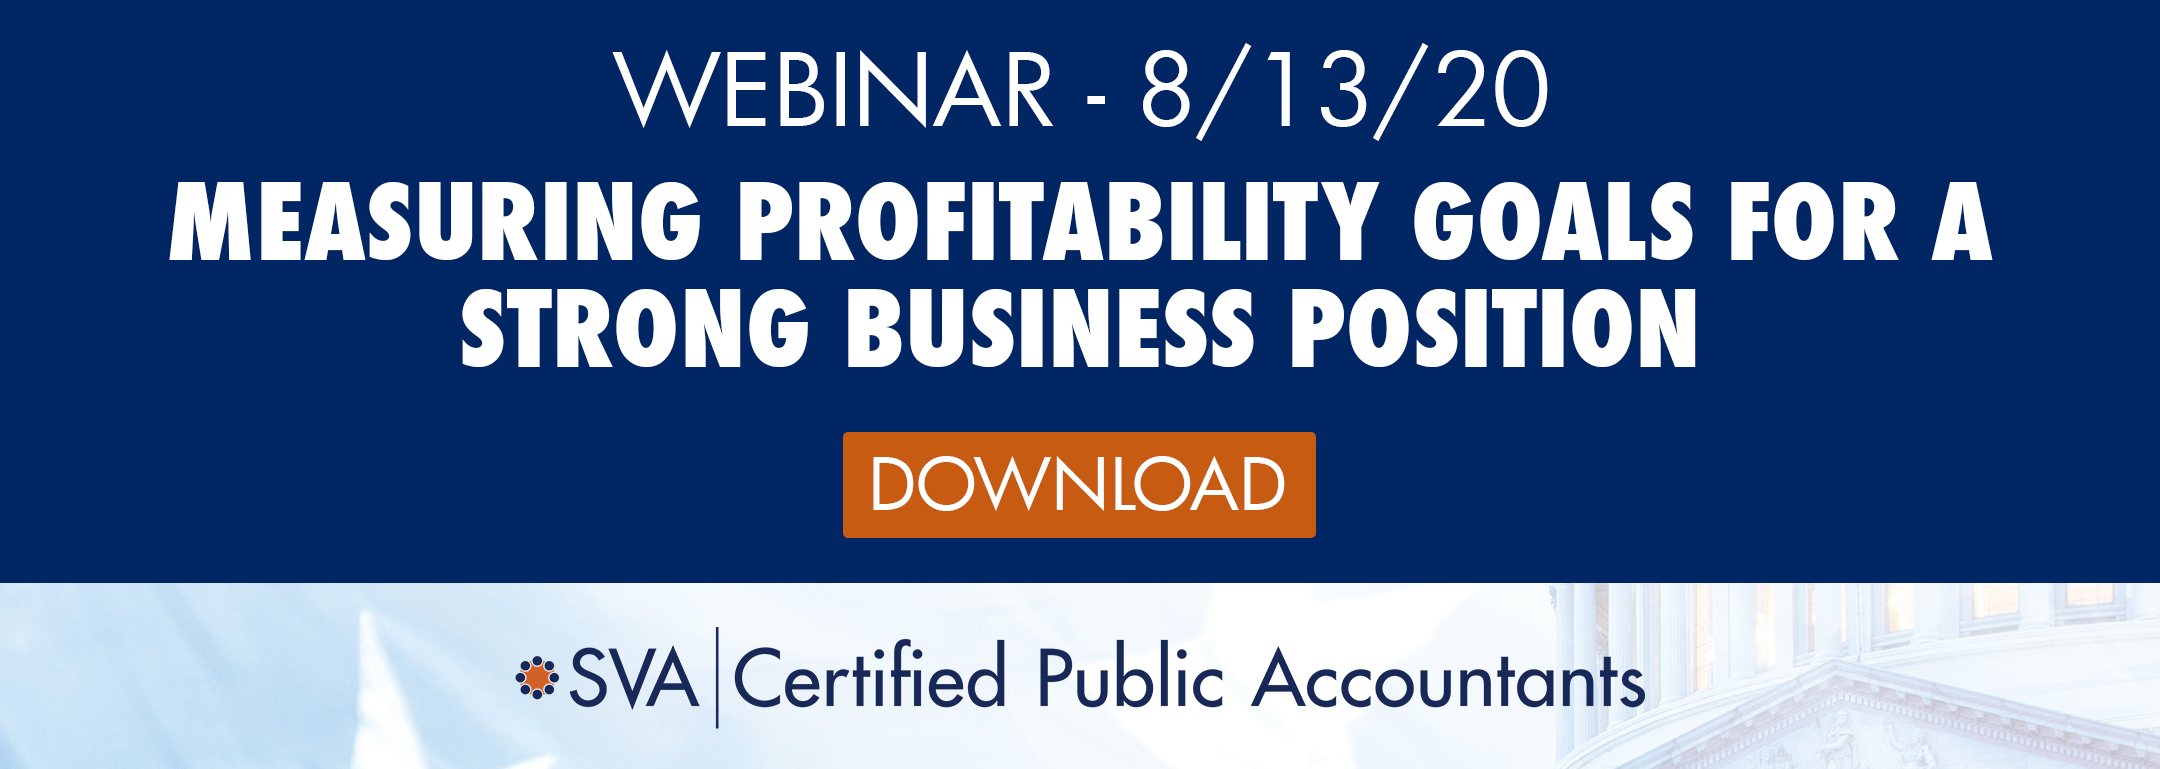 Measuring Profitability Goals for a Strong Business Position